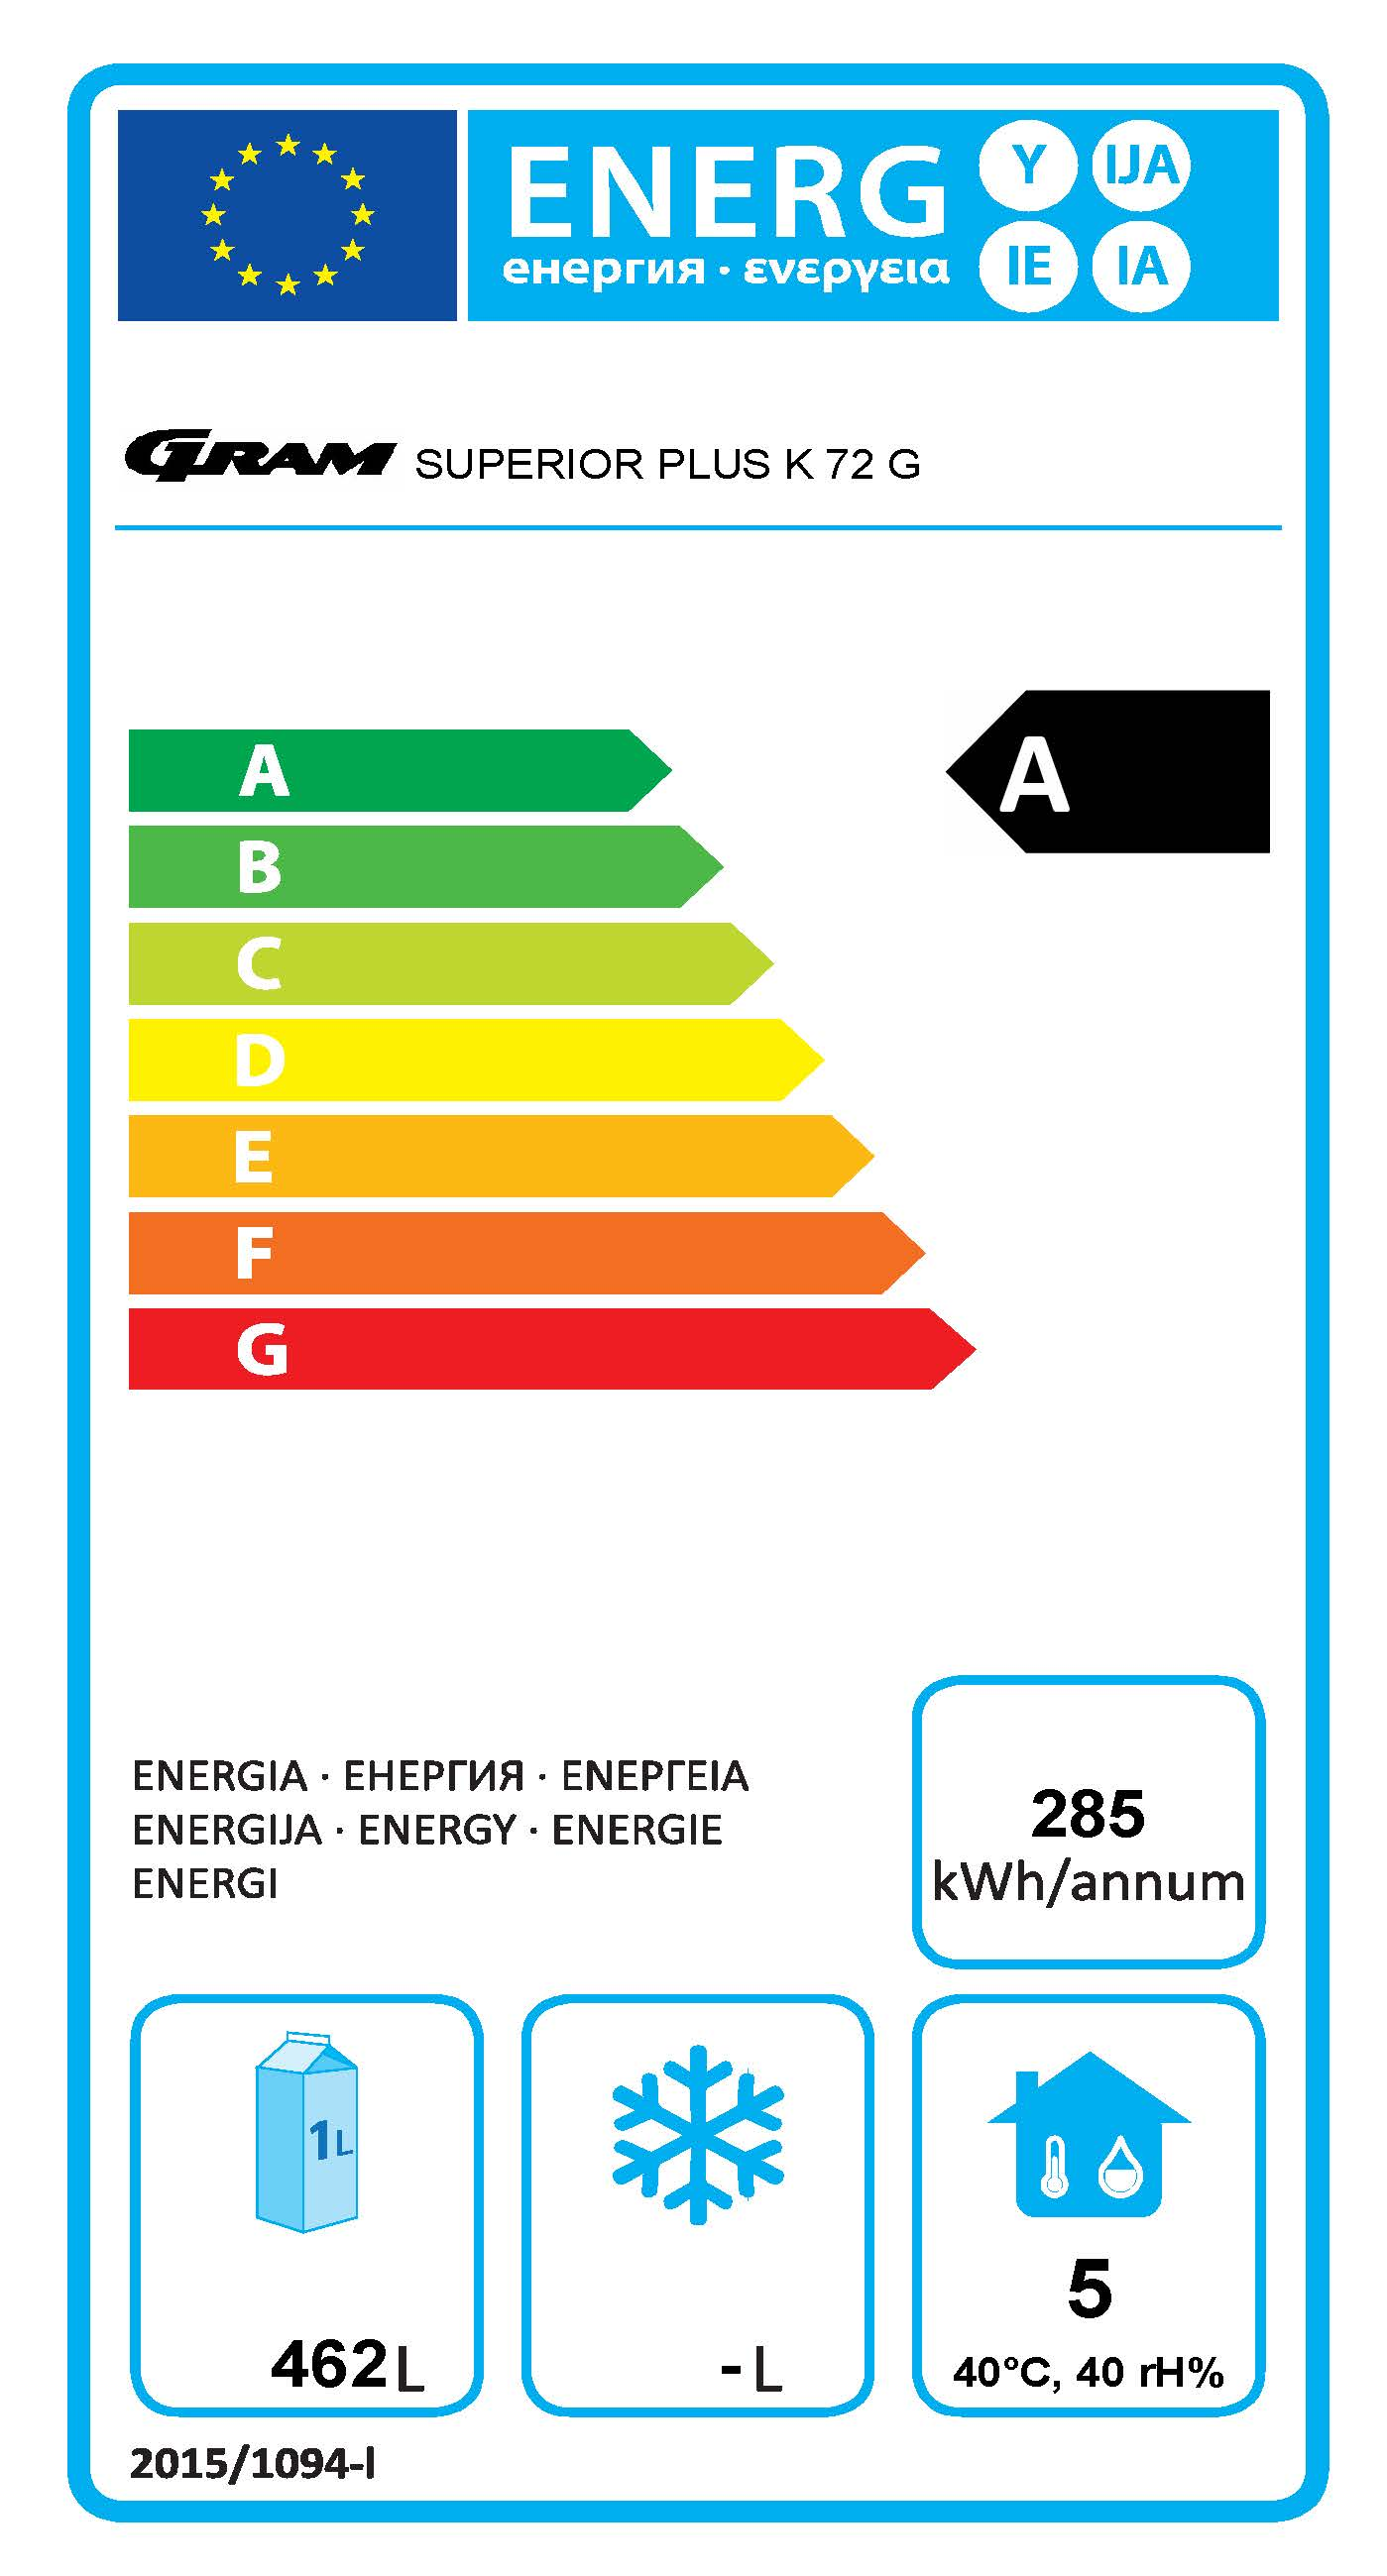 SUPERIOR PLUS K 72 LAG C1 4S 610 Ltr Upright Fridge Energy Rating